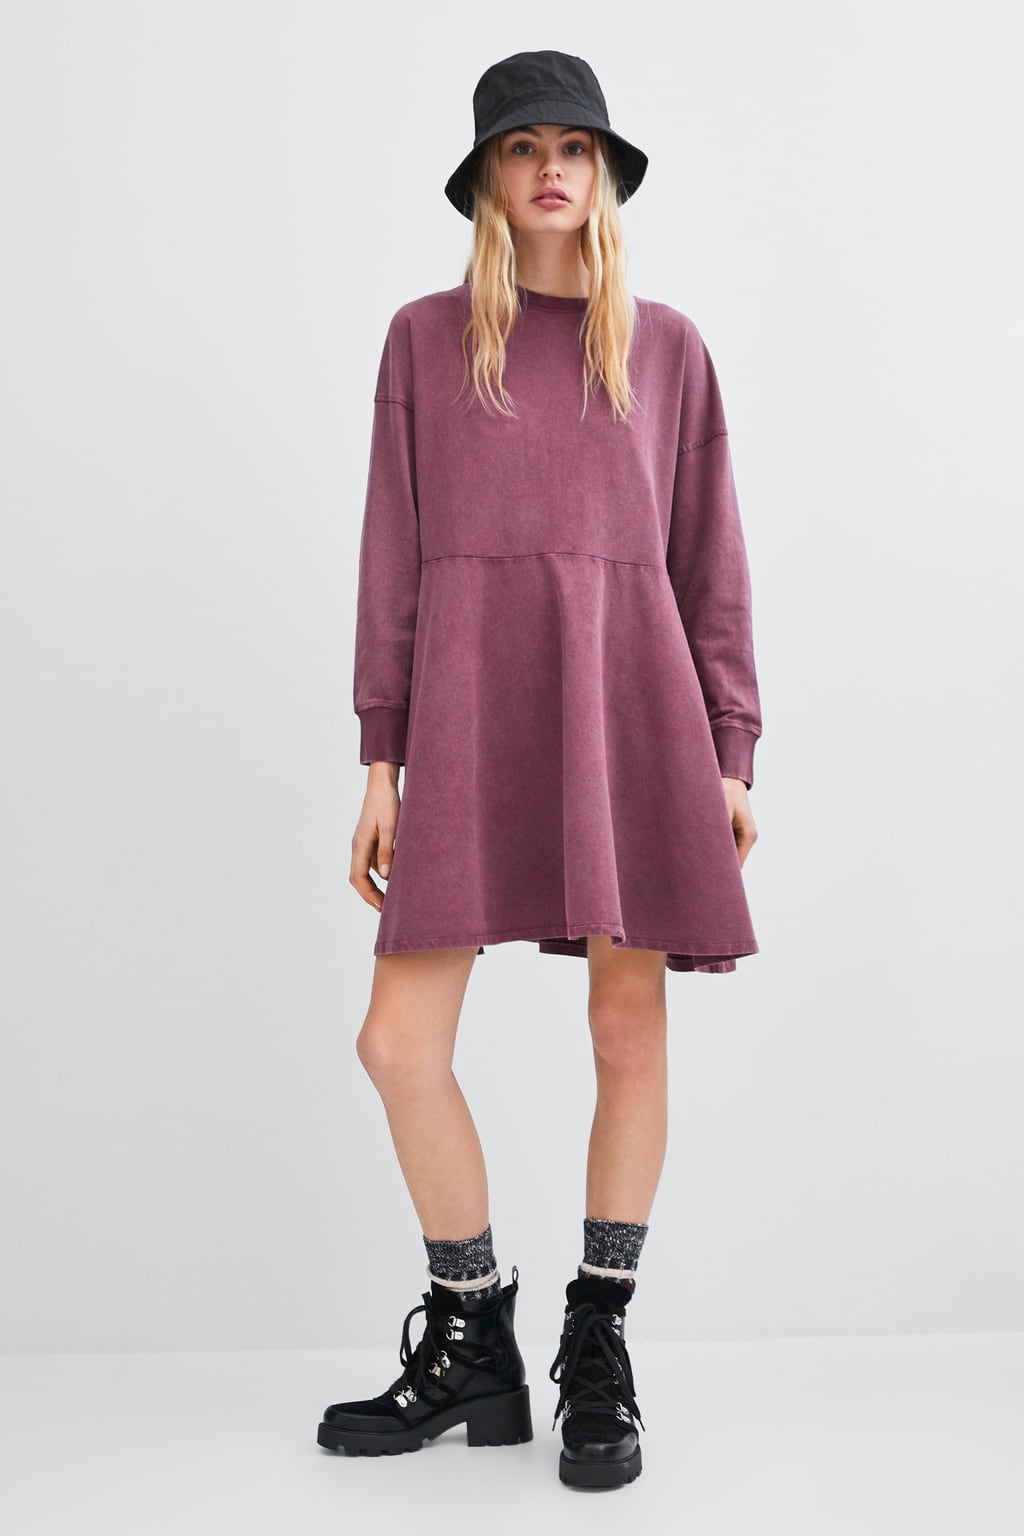 This adorable Zara dress is just €16 so we'll be getting it in all three colours, thanks